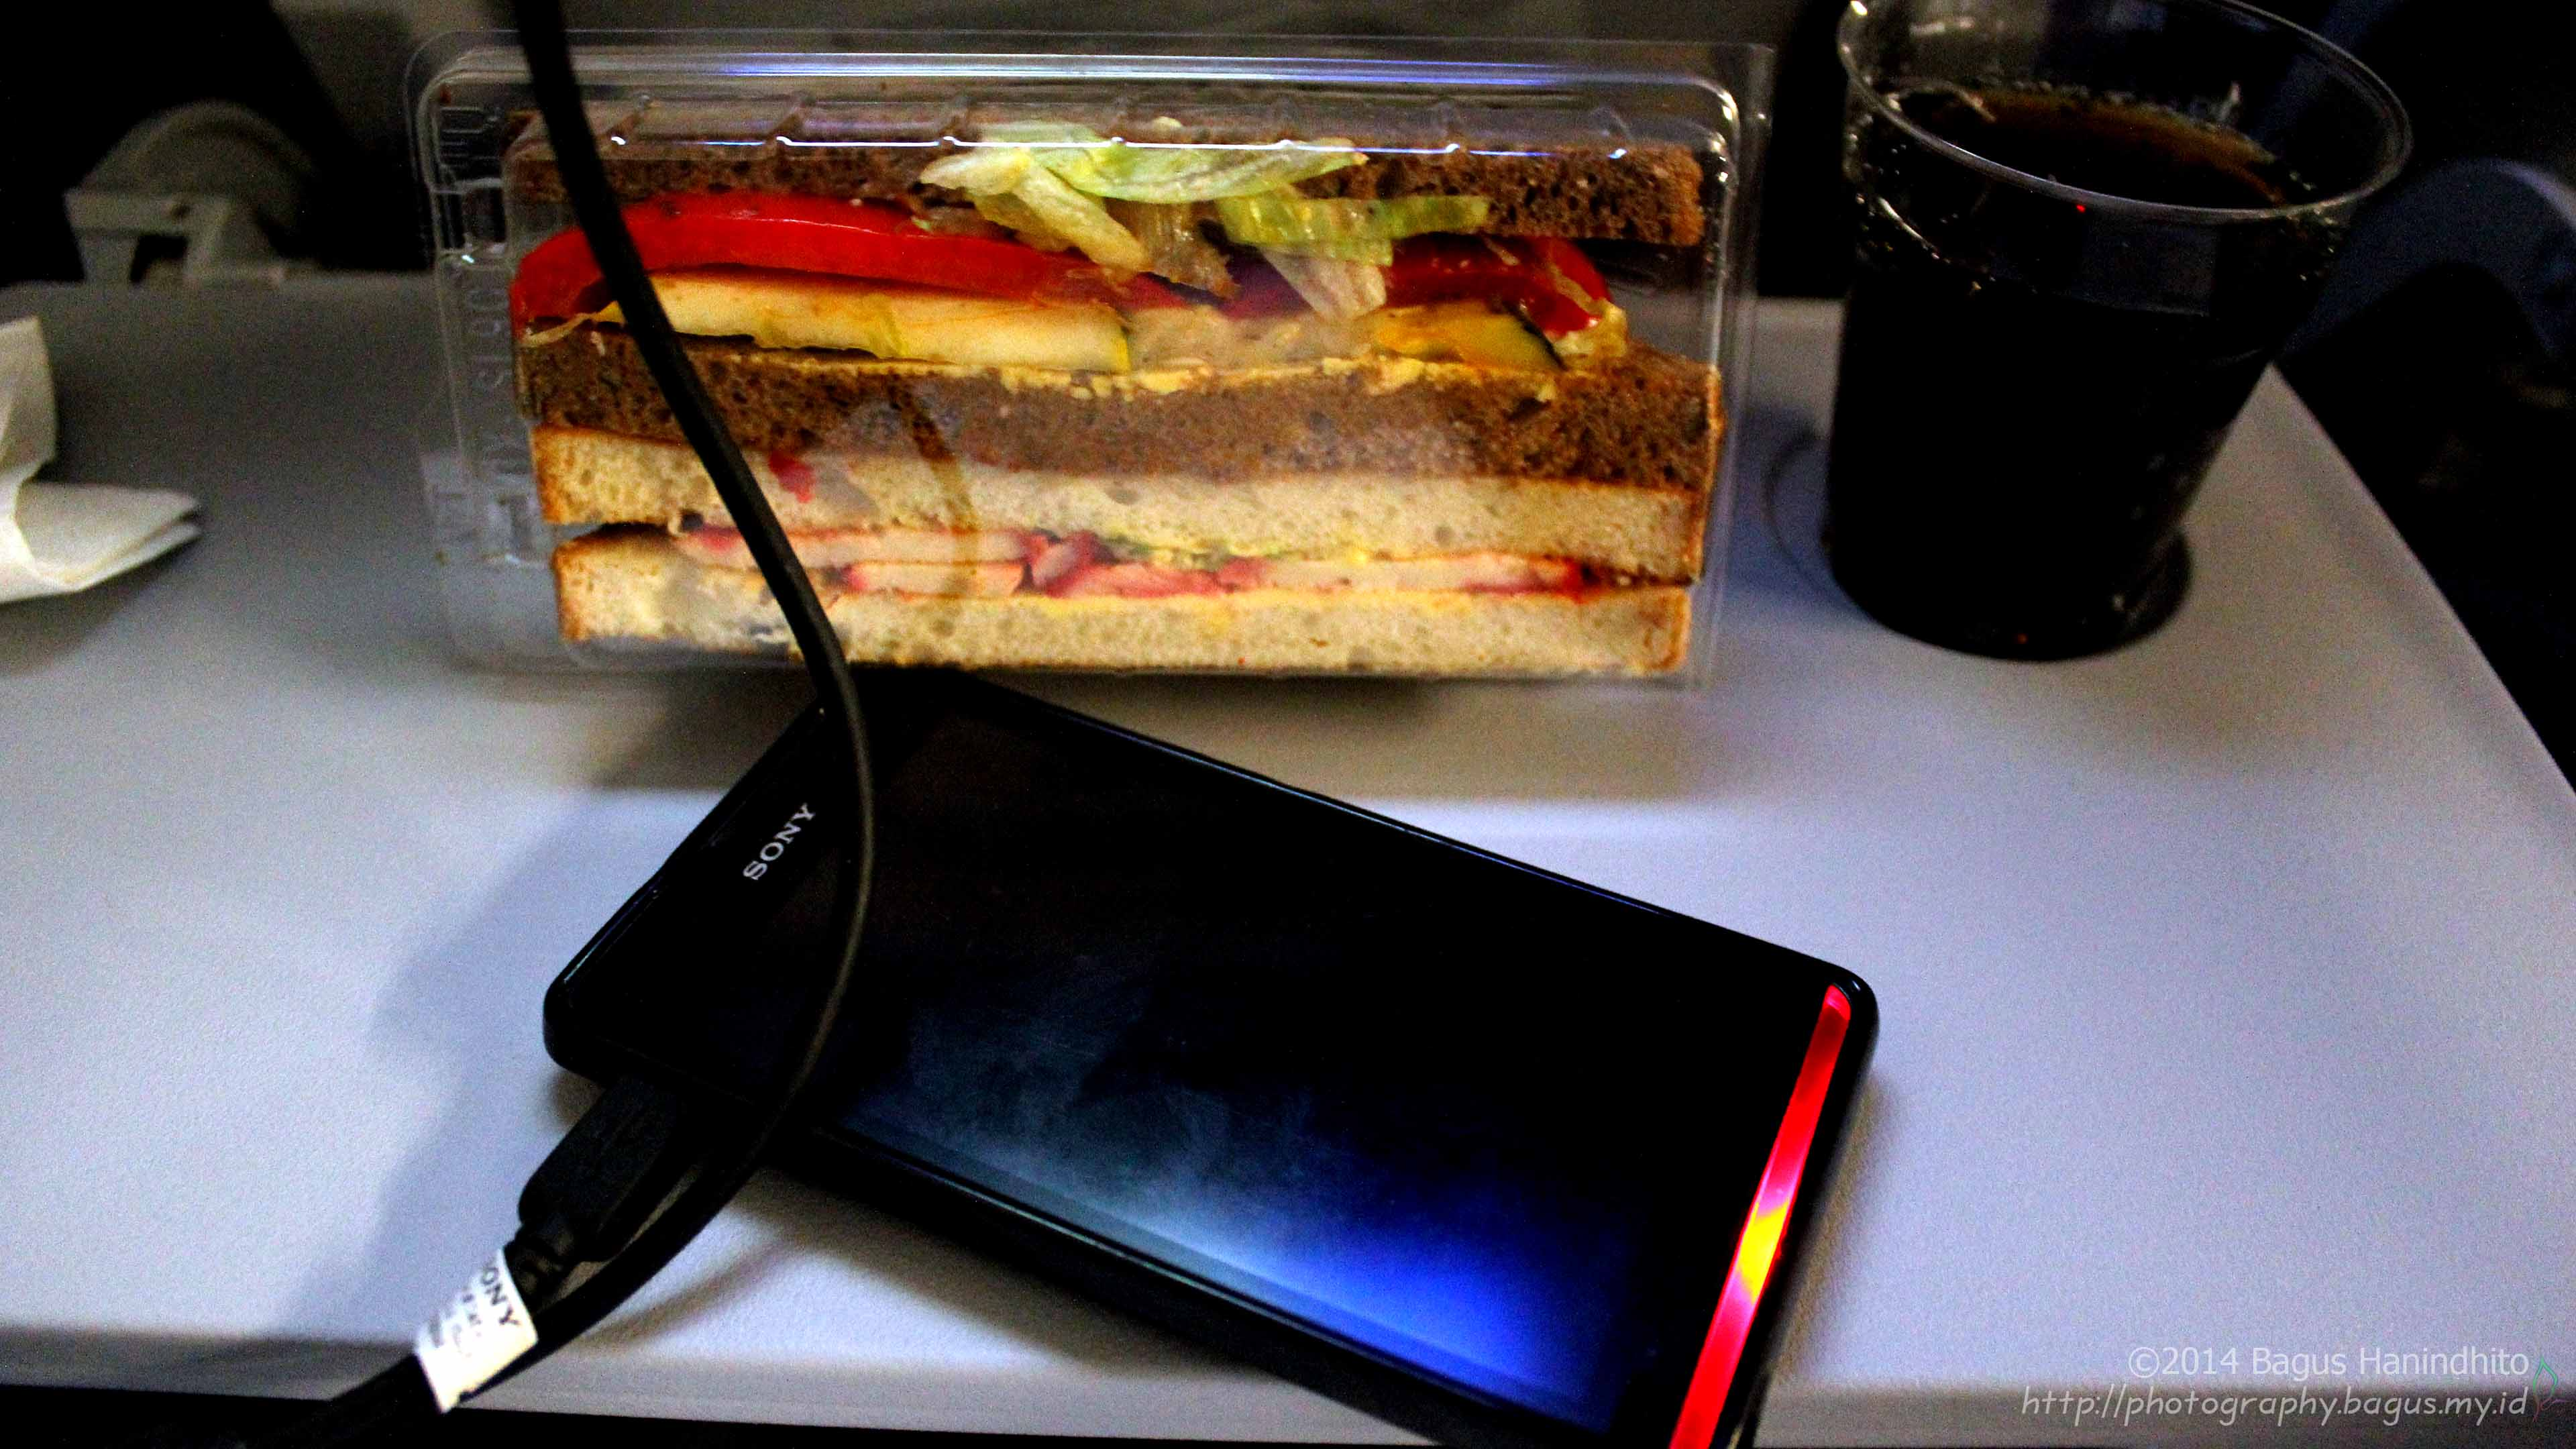 A delicious sandwich was served as a light meal during my flight from CGK to KUL using LH783. There was also a USB port that could be used as smartphone charger.